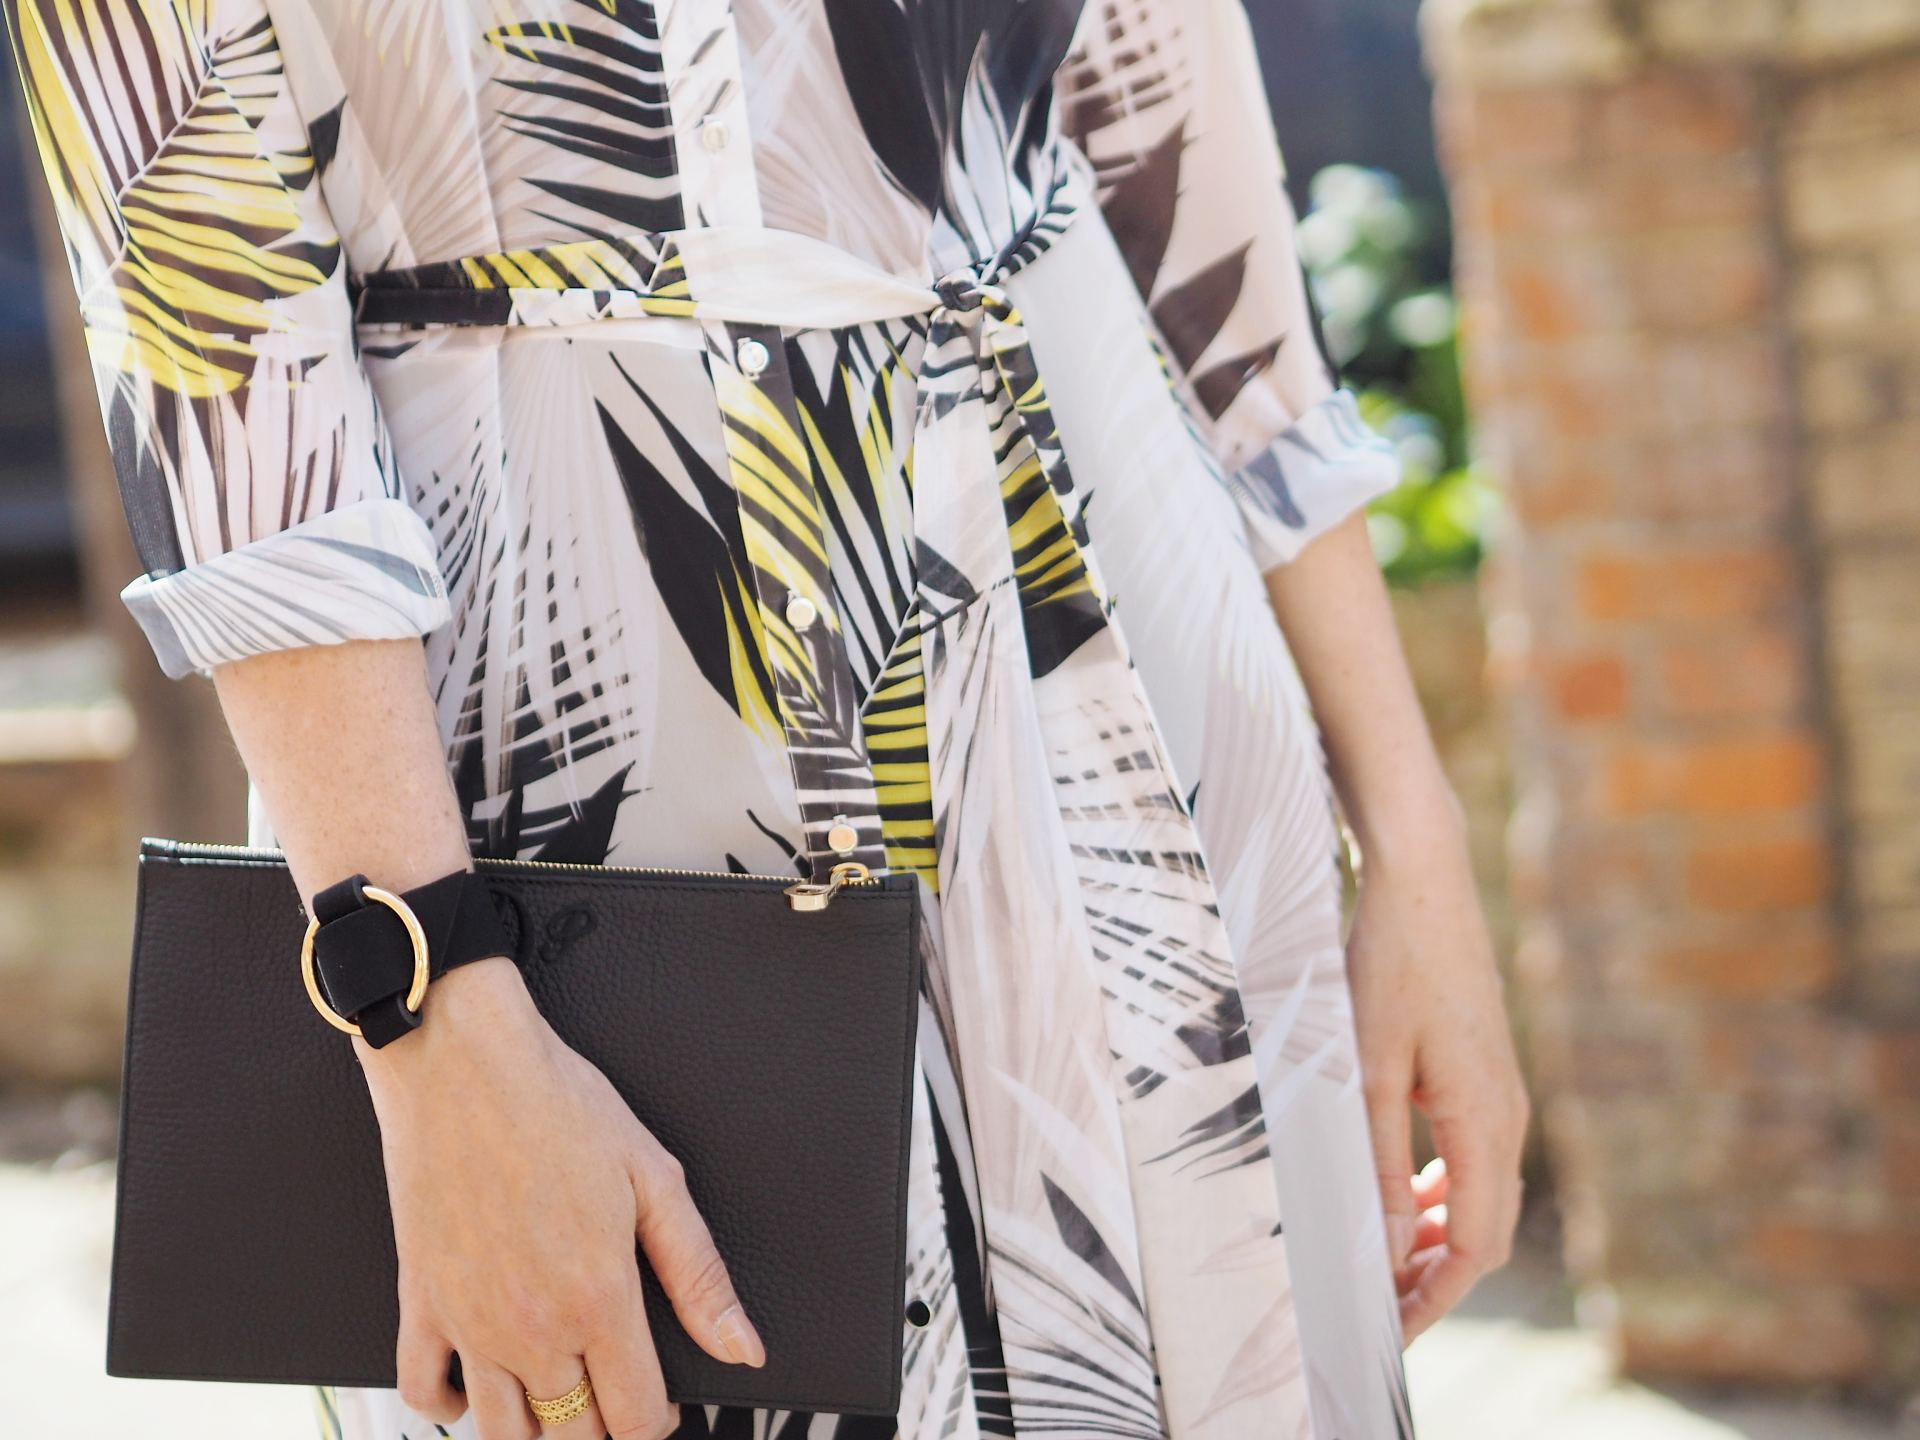 leaf print wallis shirt dress with black clutch bag and cuff bracelet